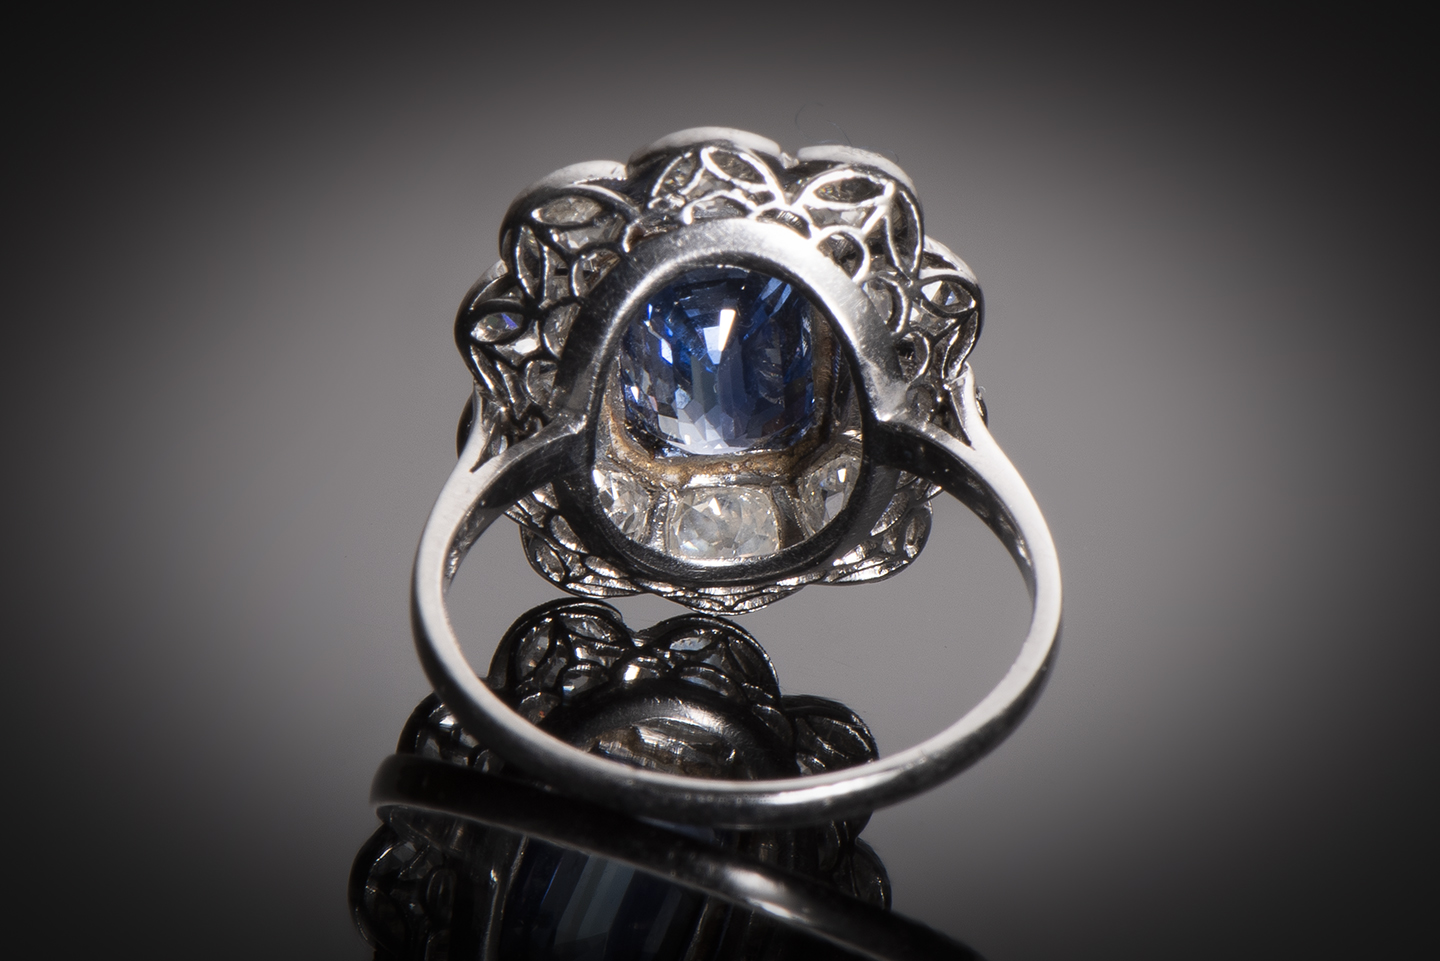 Bague Art Déco saphir bleu intense (3,50 carats, certificat CGL) diamants (1,80 carat)-2